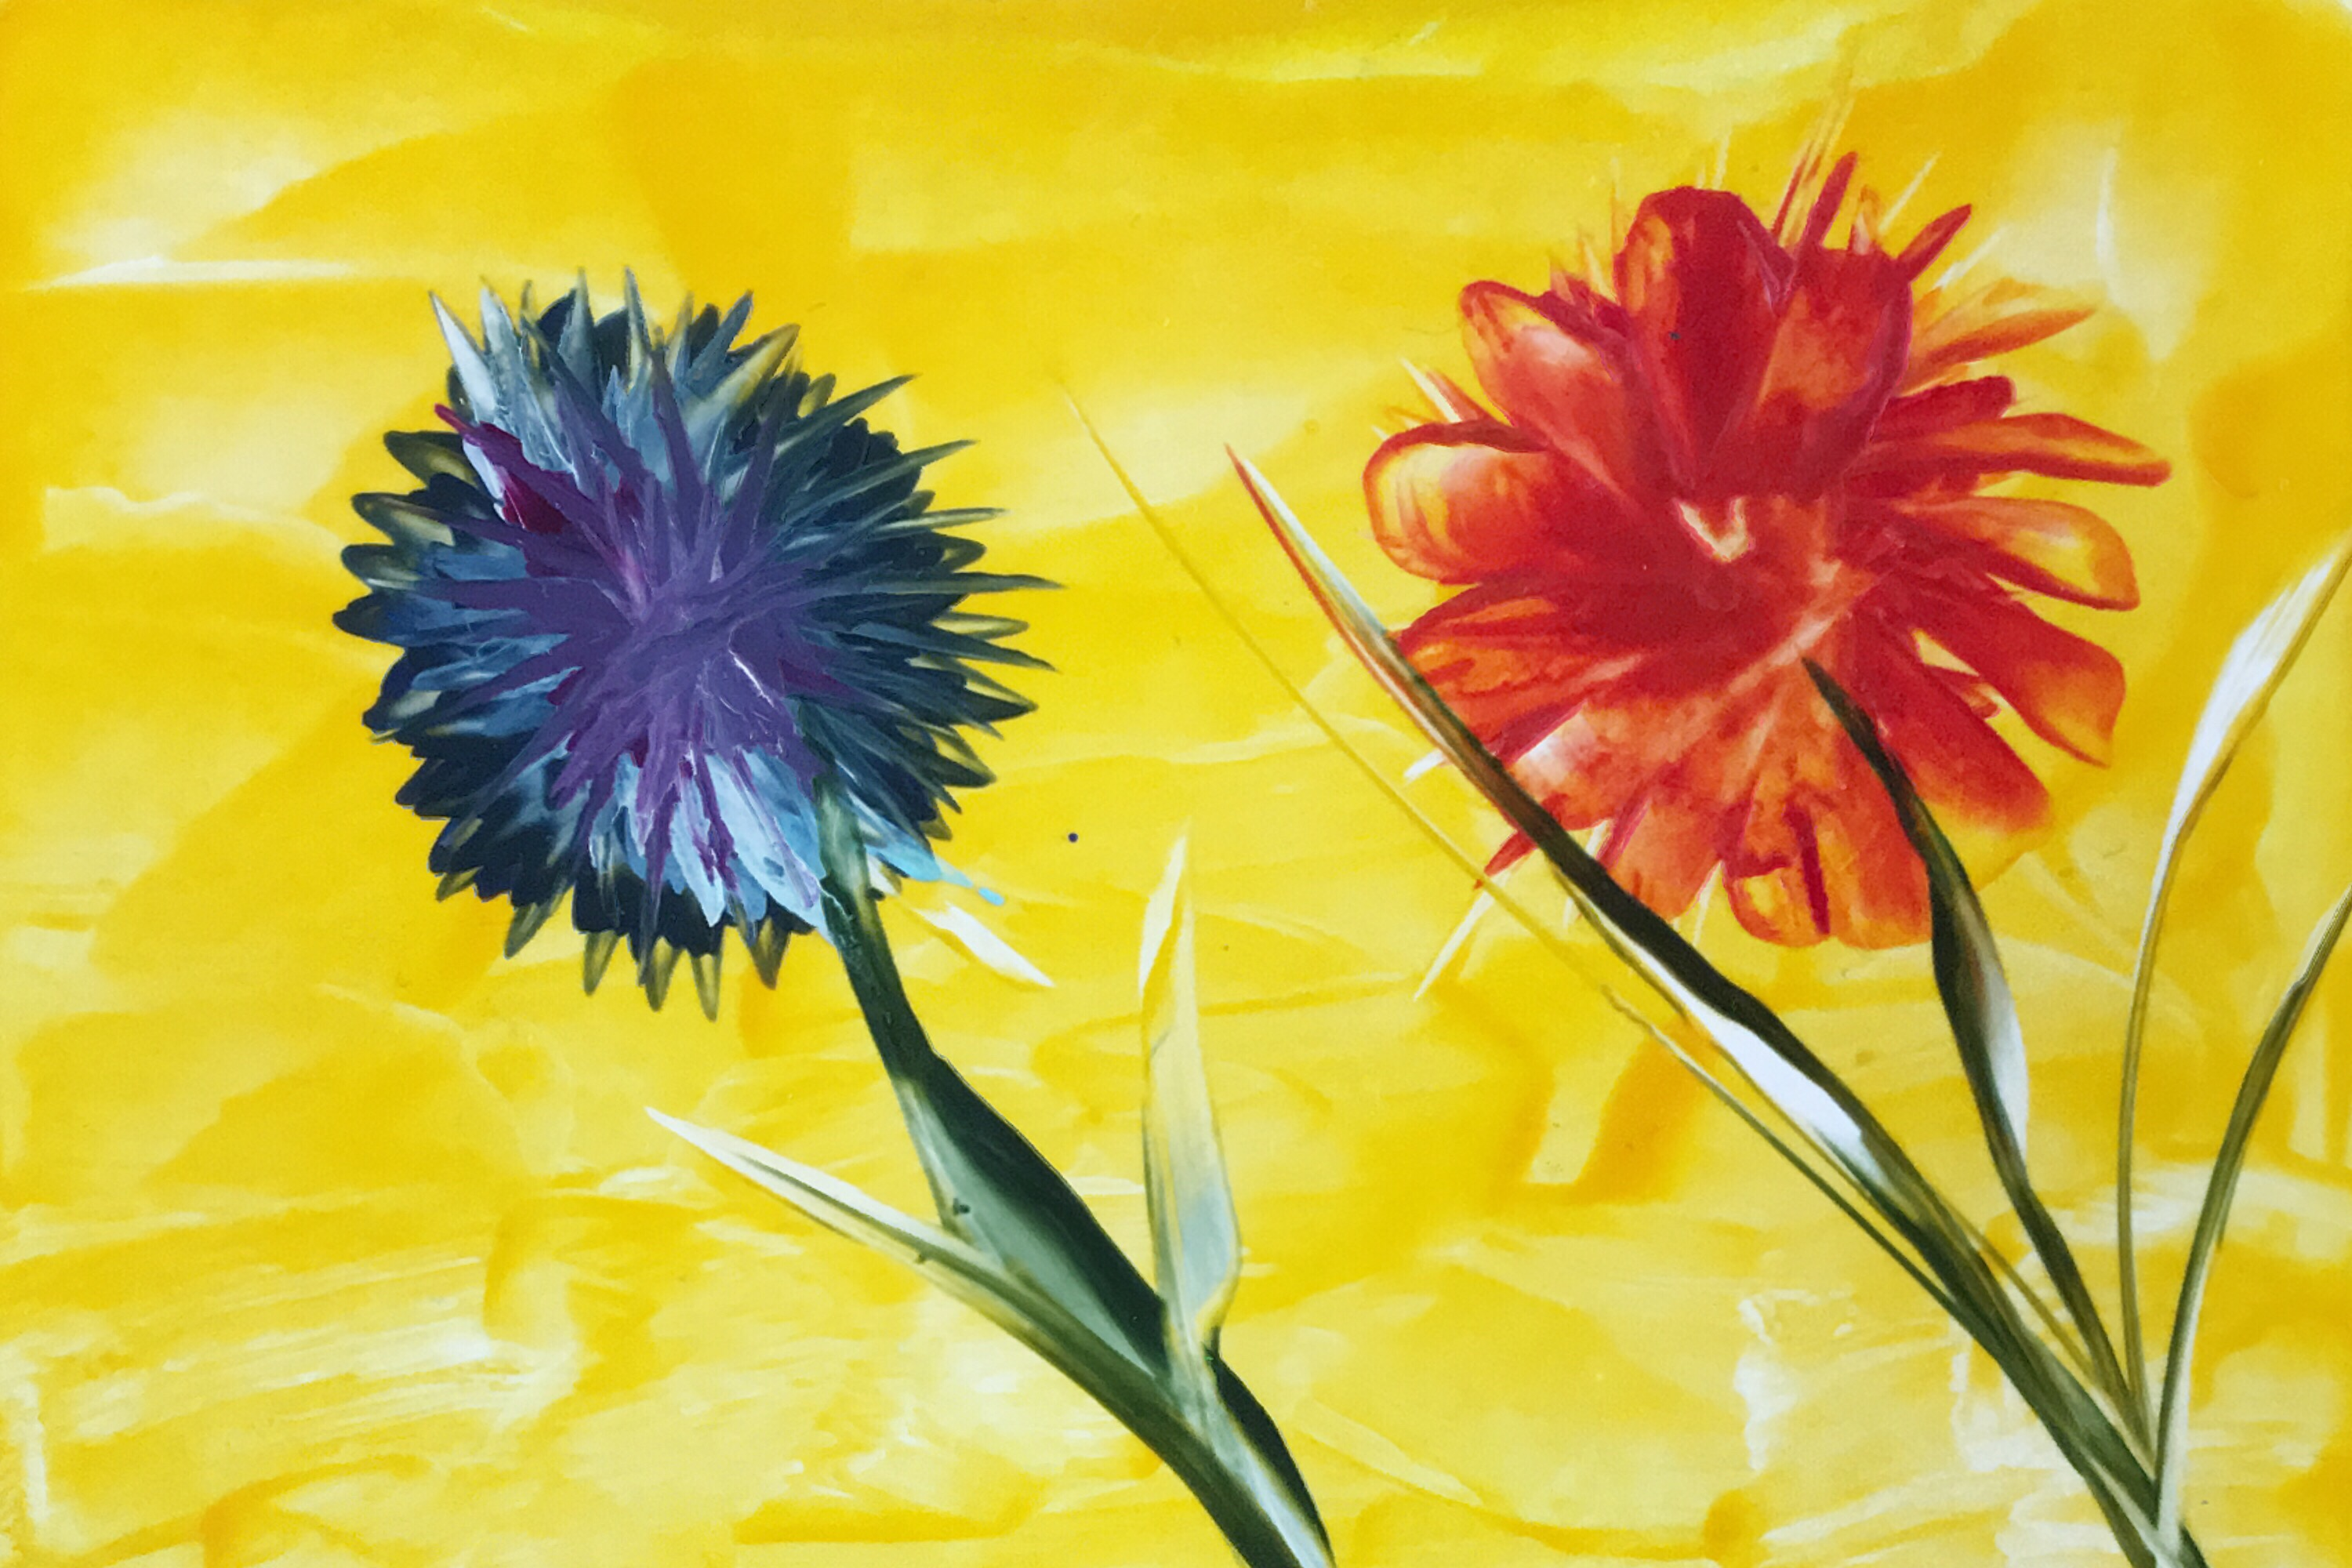 Blumen/Flowers, Encaustic on paper, 10.5x15